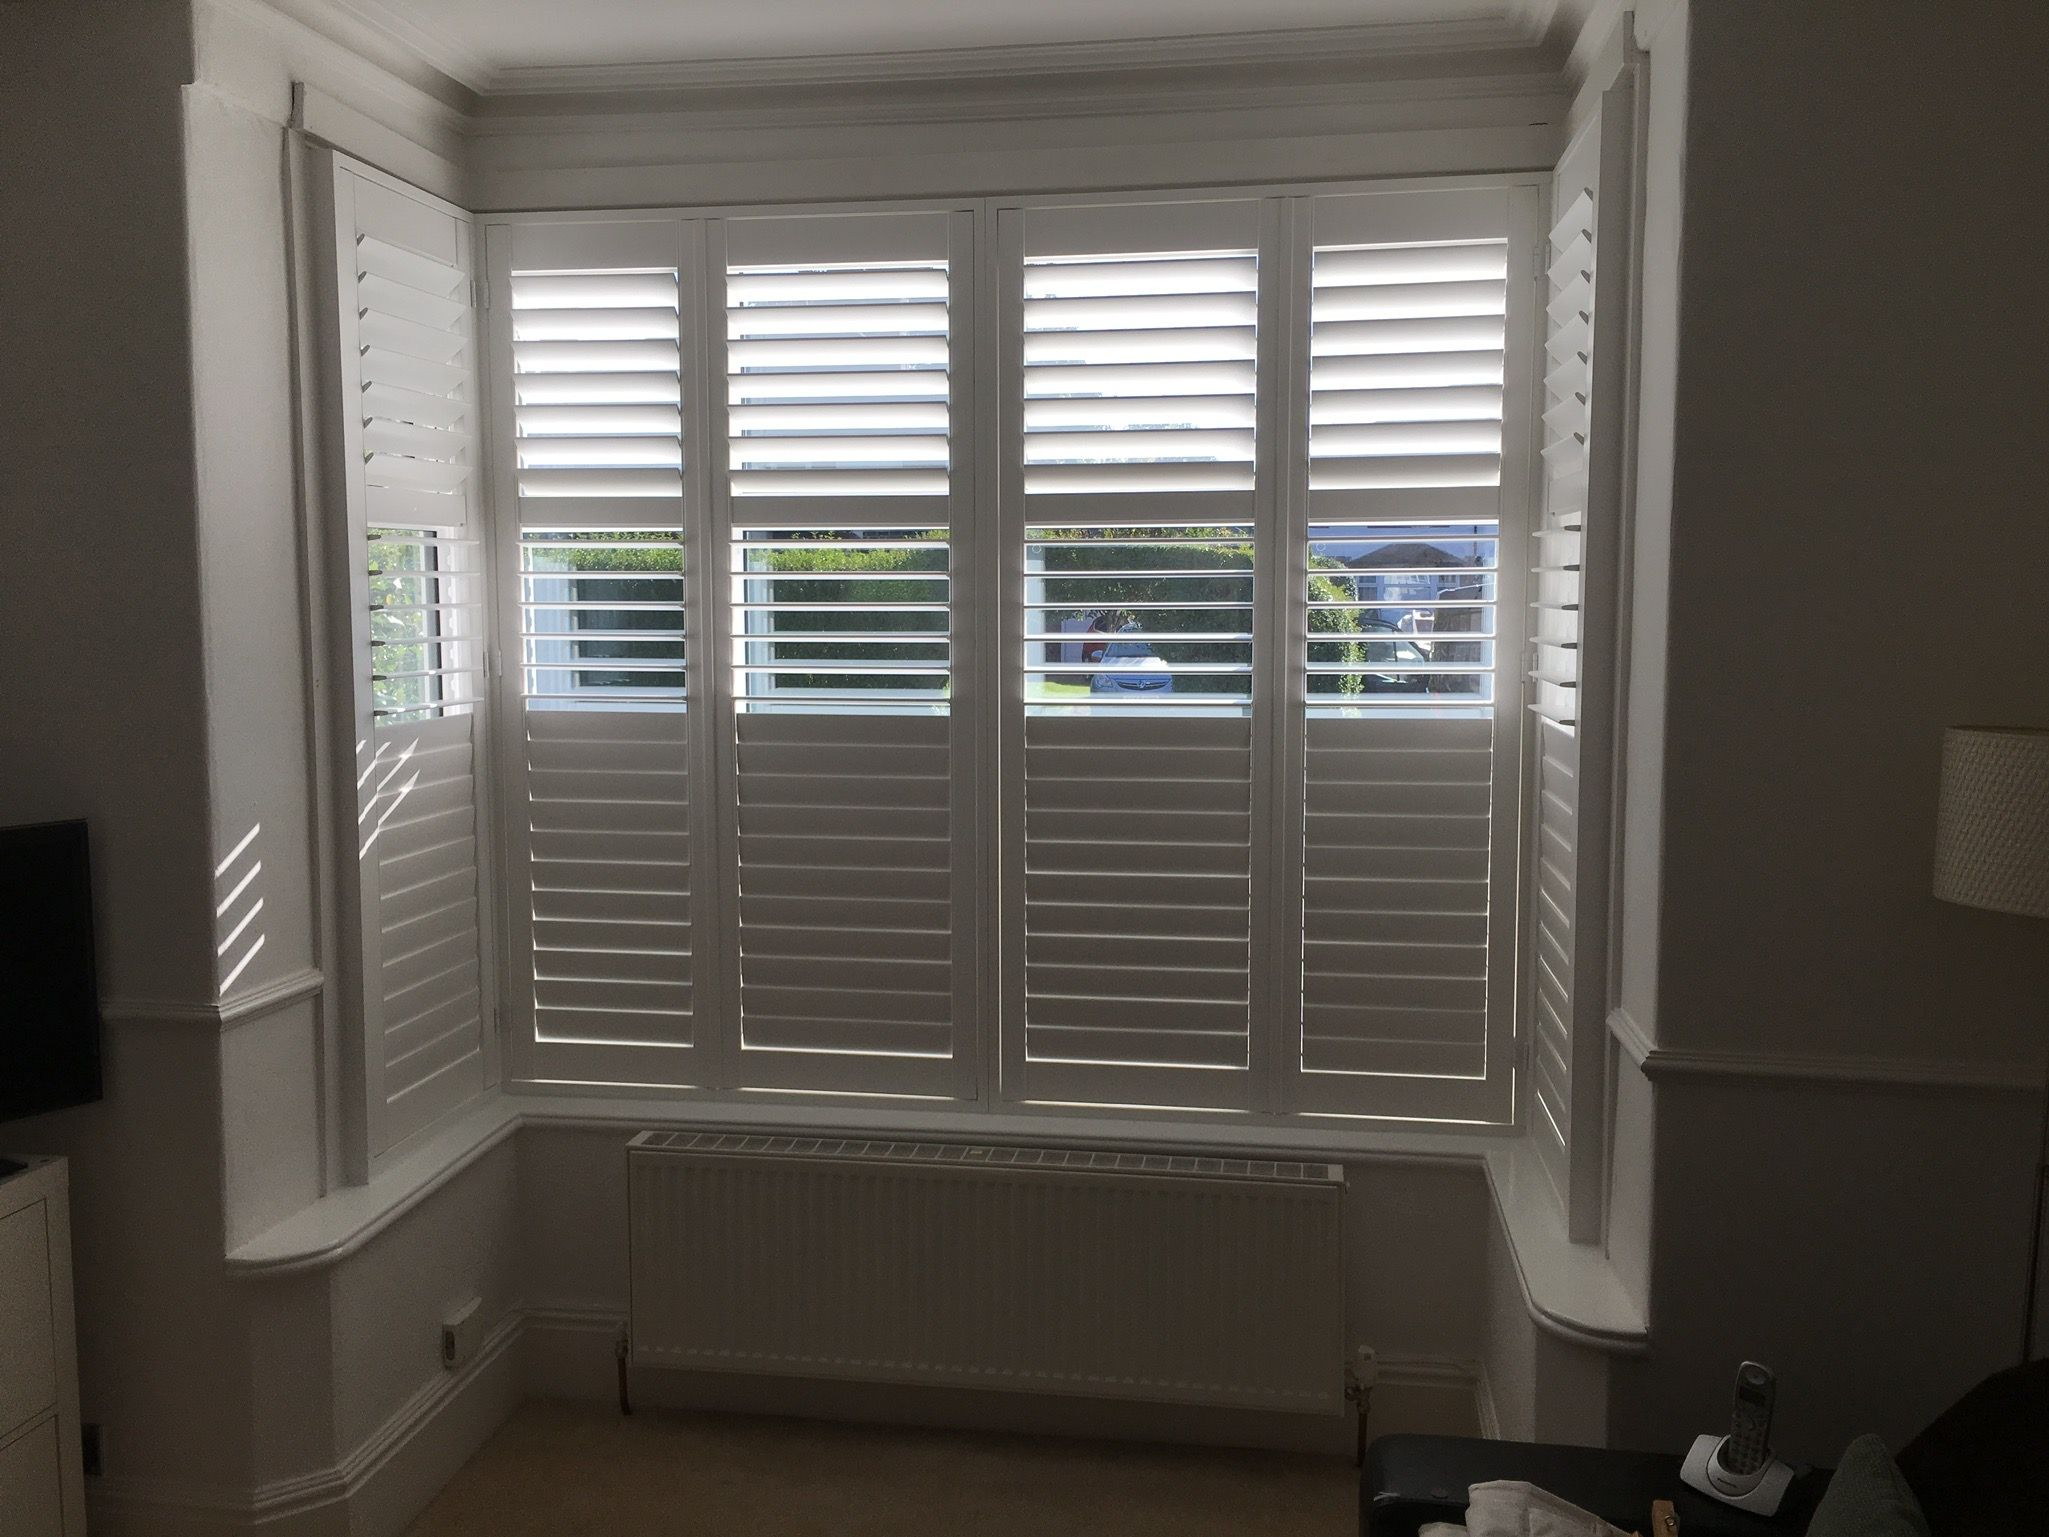 The second of the two box bay wooden window shutter